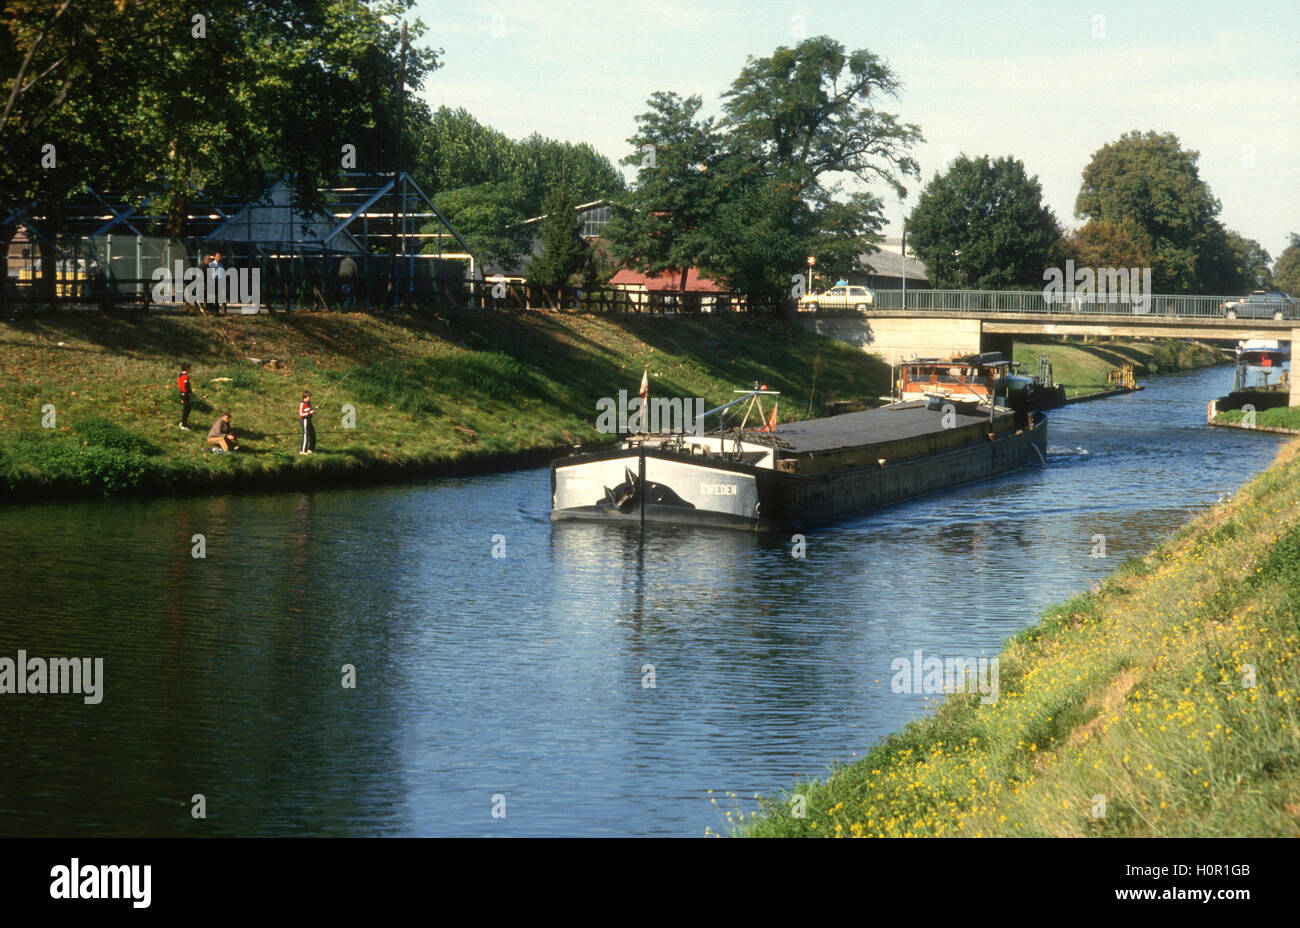 RIVER BOAT Sweden on the way with cargo on Europe rivers and canals - Stock Image